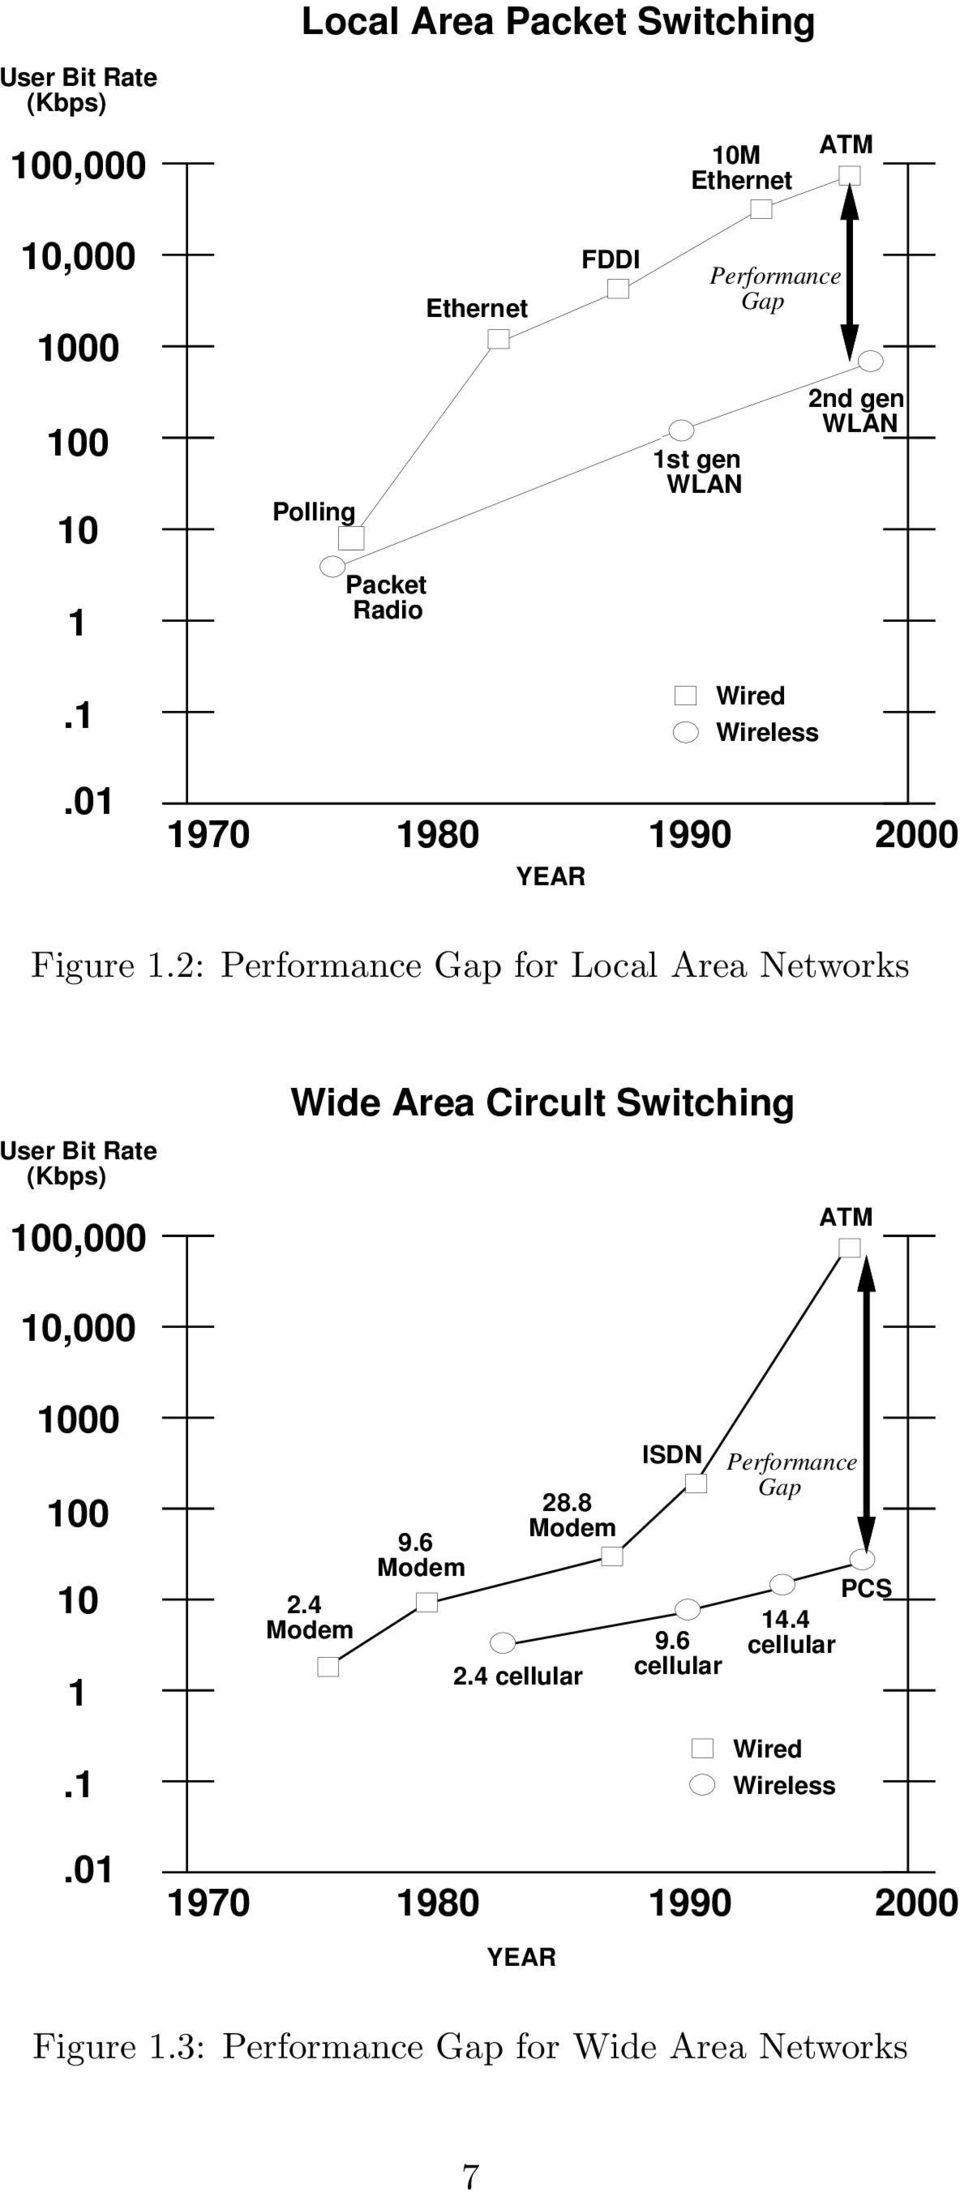 2: Performance Gap for Local Area Networks User Bit Rate (Kbps) 1, 1, Wide Area Circult Switching ATM 1 1 1 1.1 2.4 Modem 9.